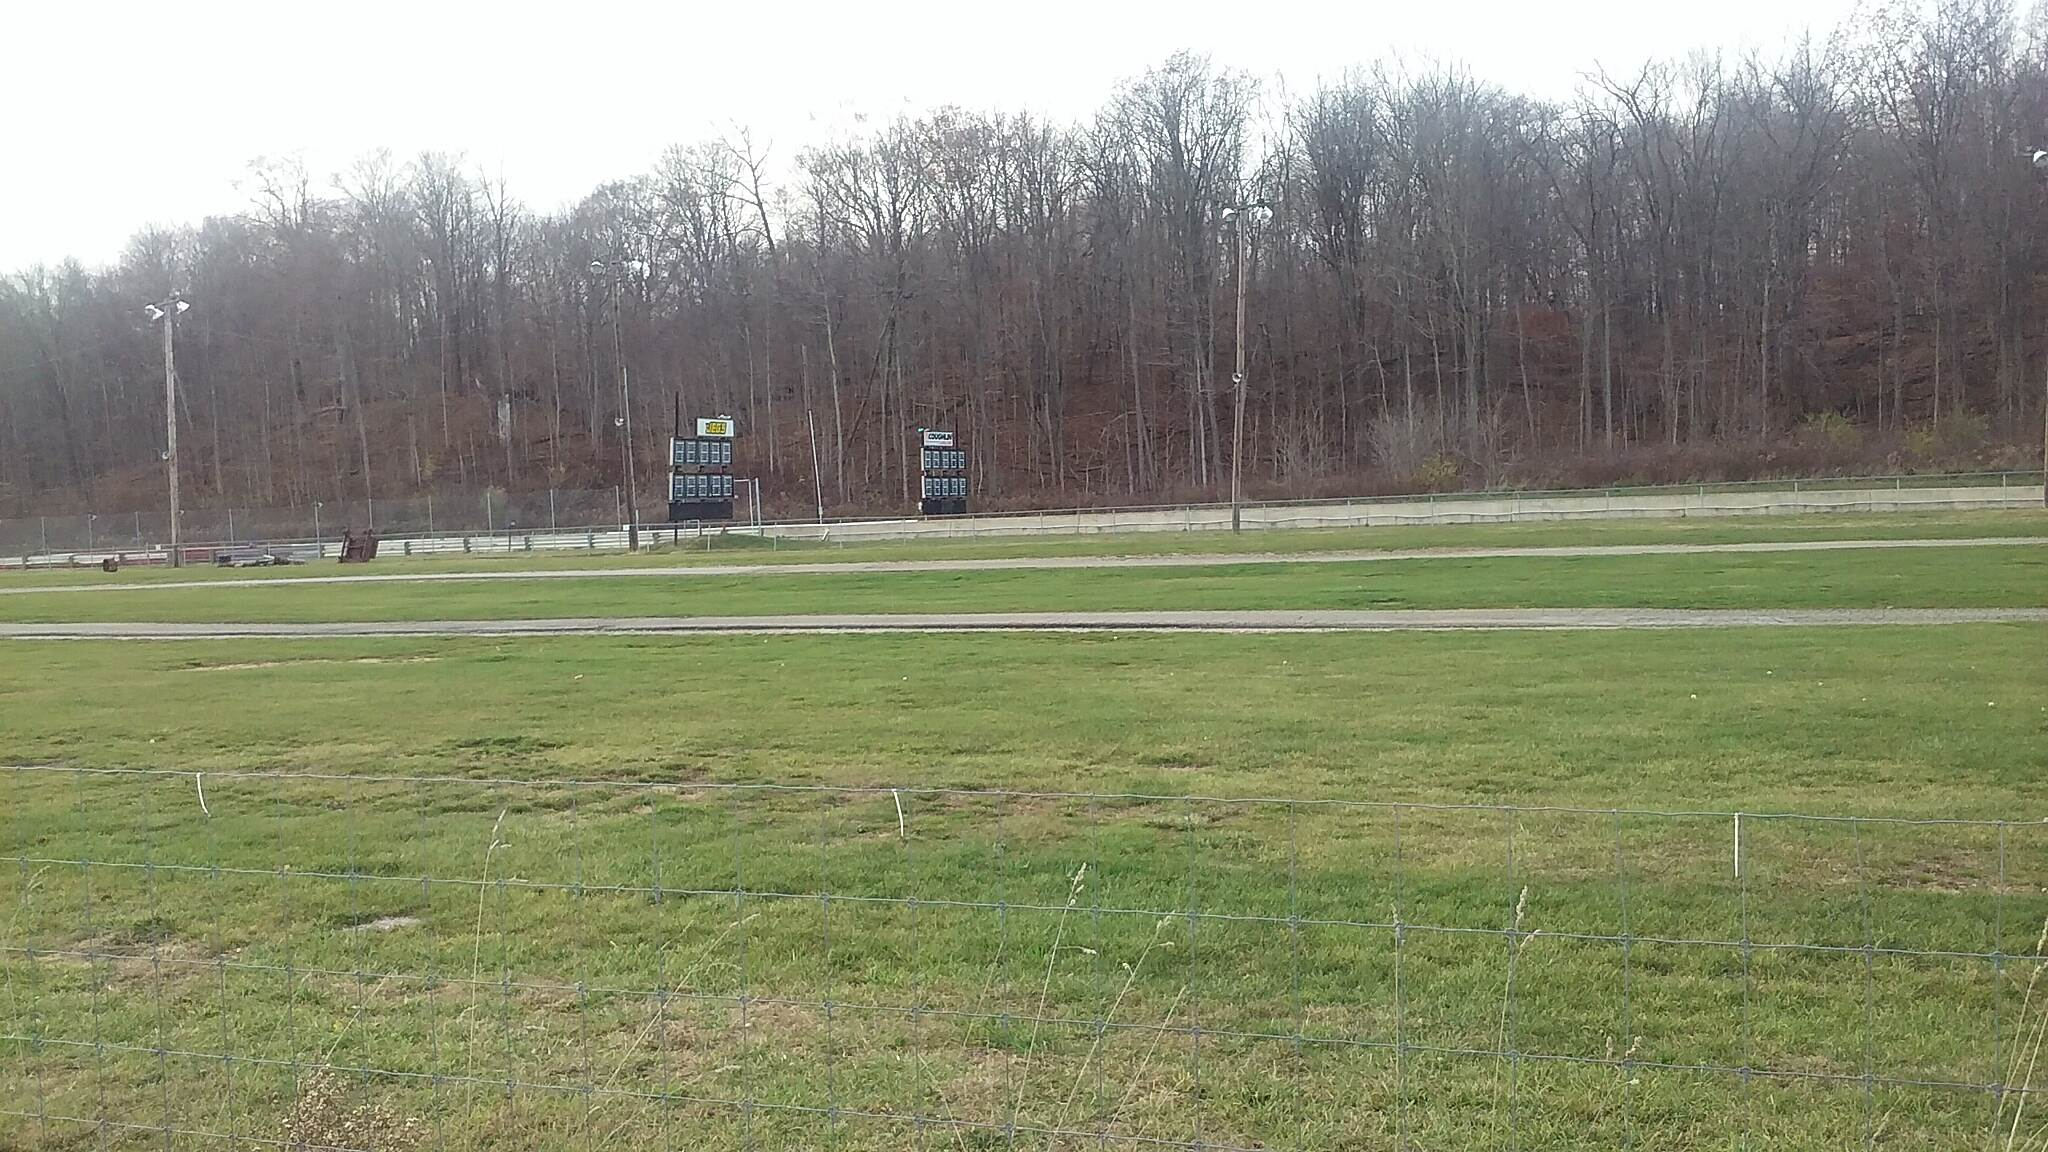 Heart of Ohio Trail November 2015 Pacemakers Dragway Park along Heart of Ohio Trail in South part of Mt. Vernon, OH